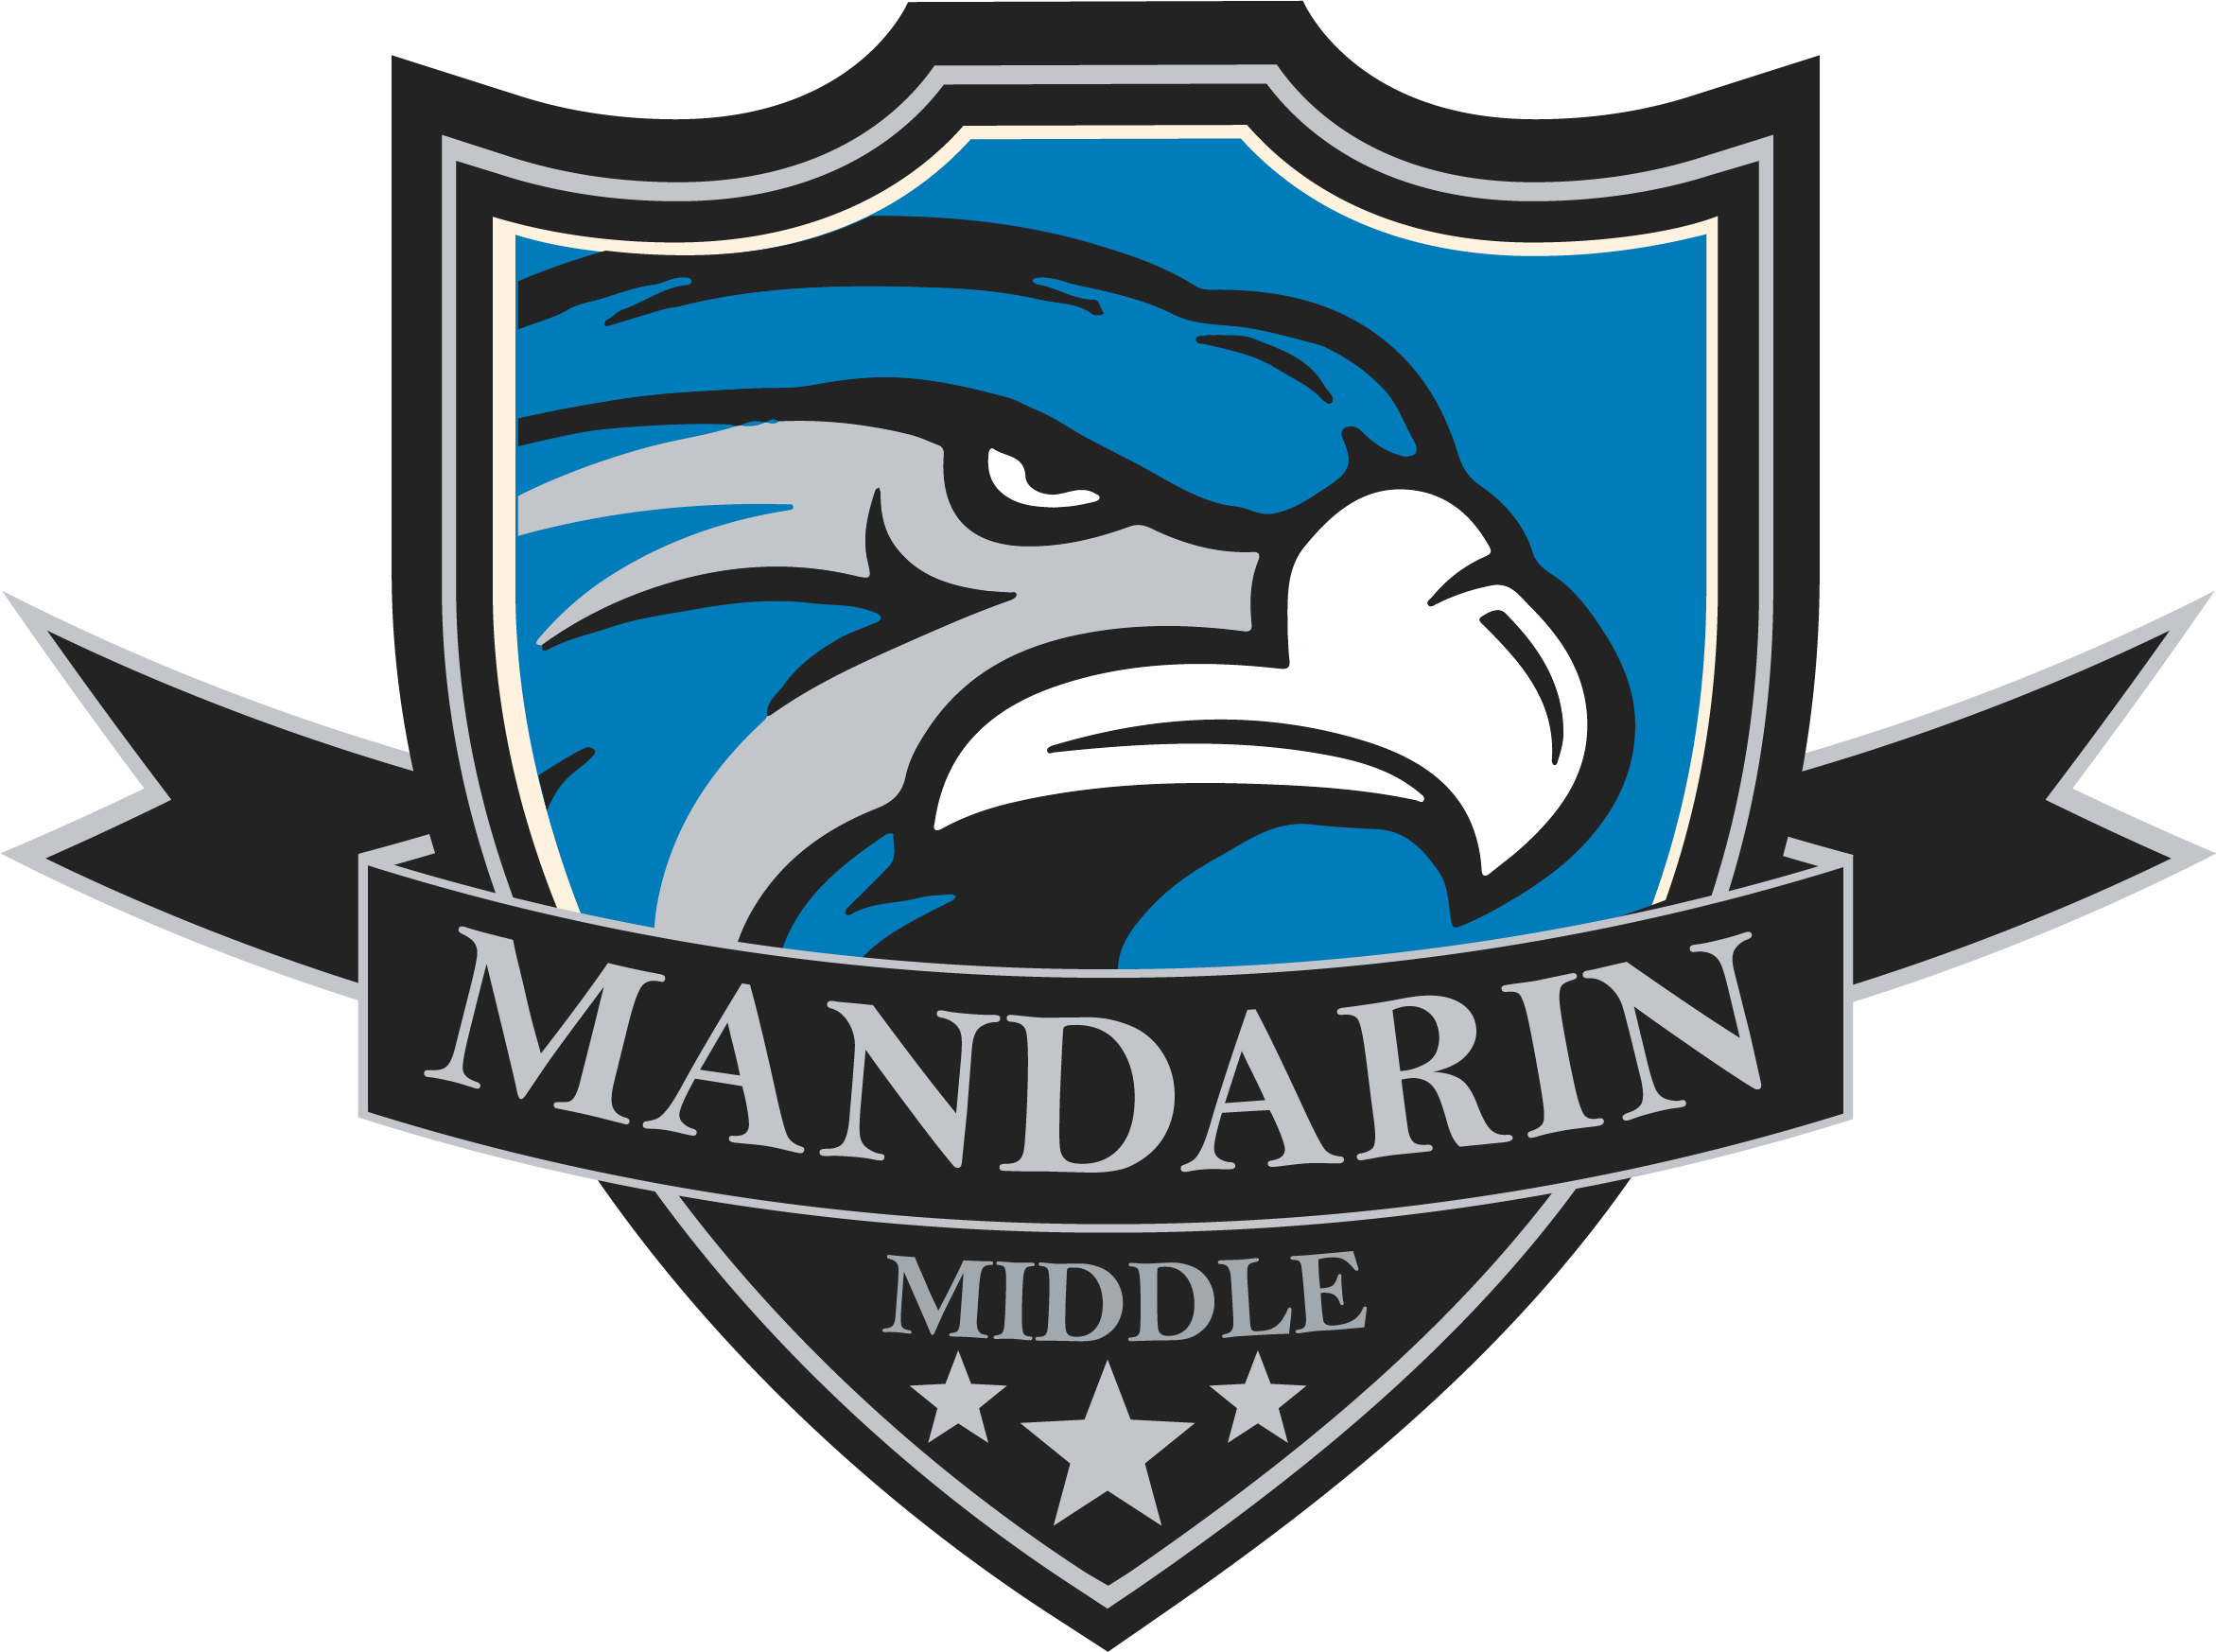 Mandarin Middle School Logo